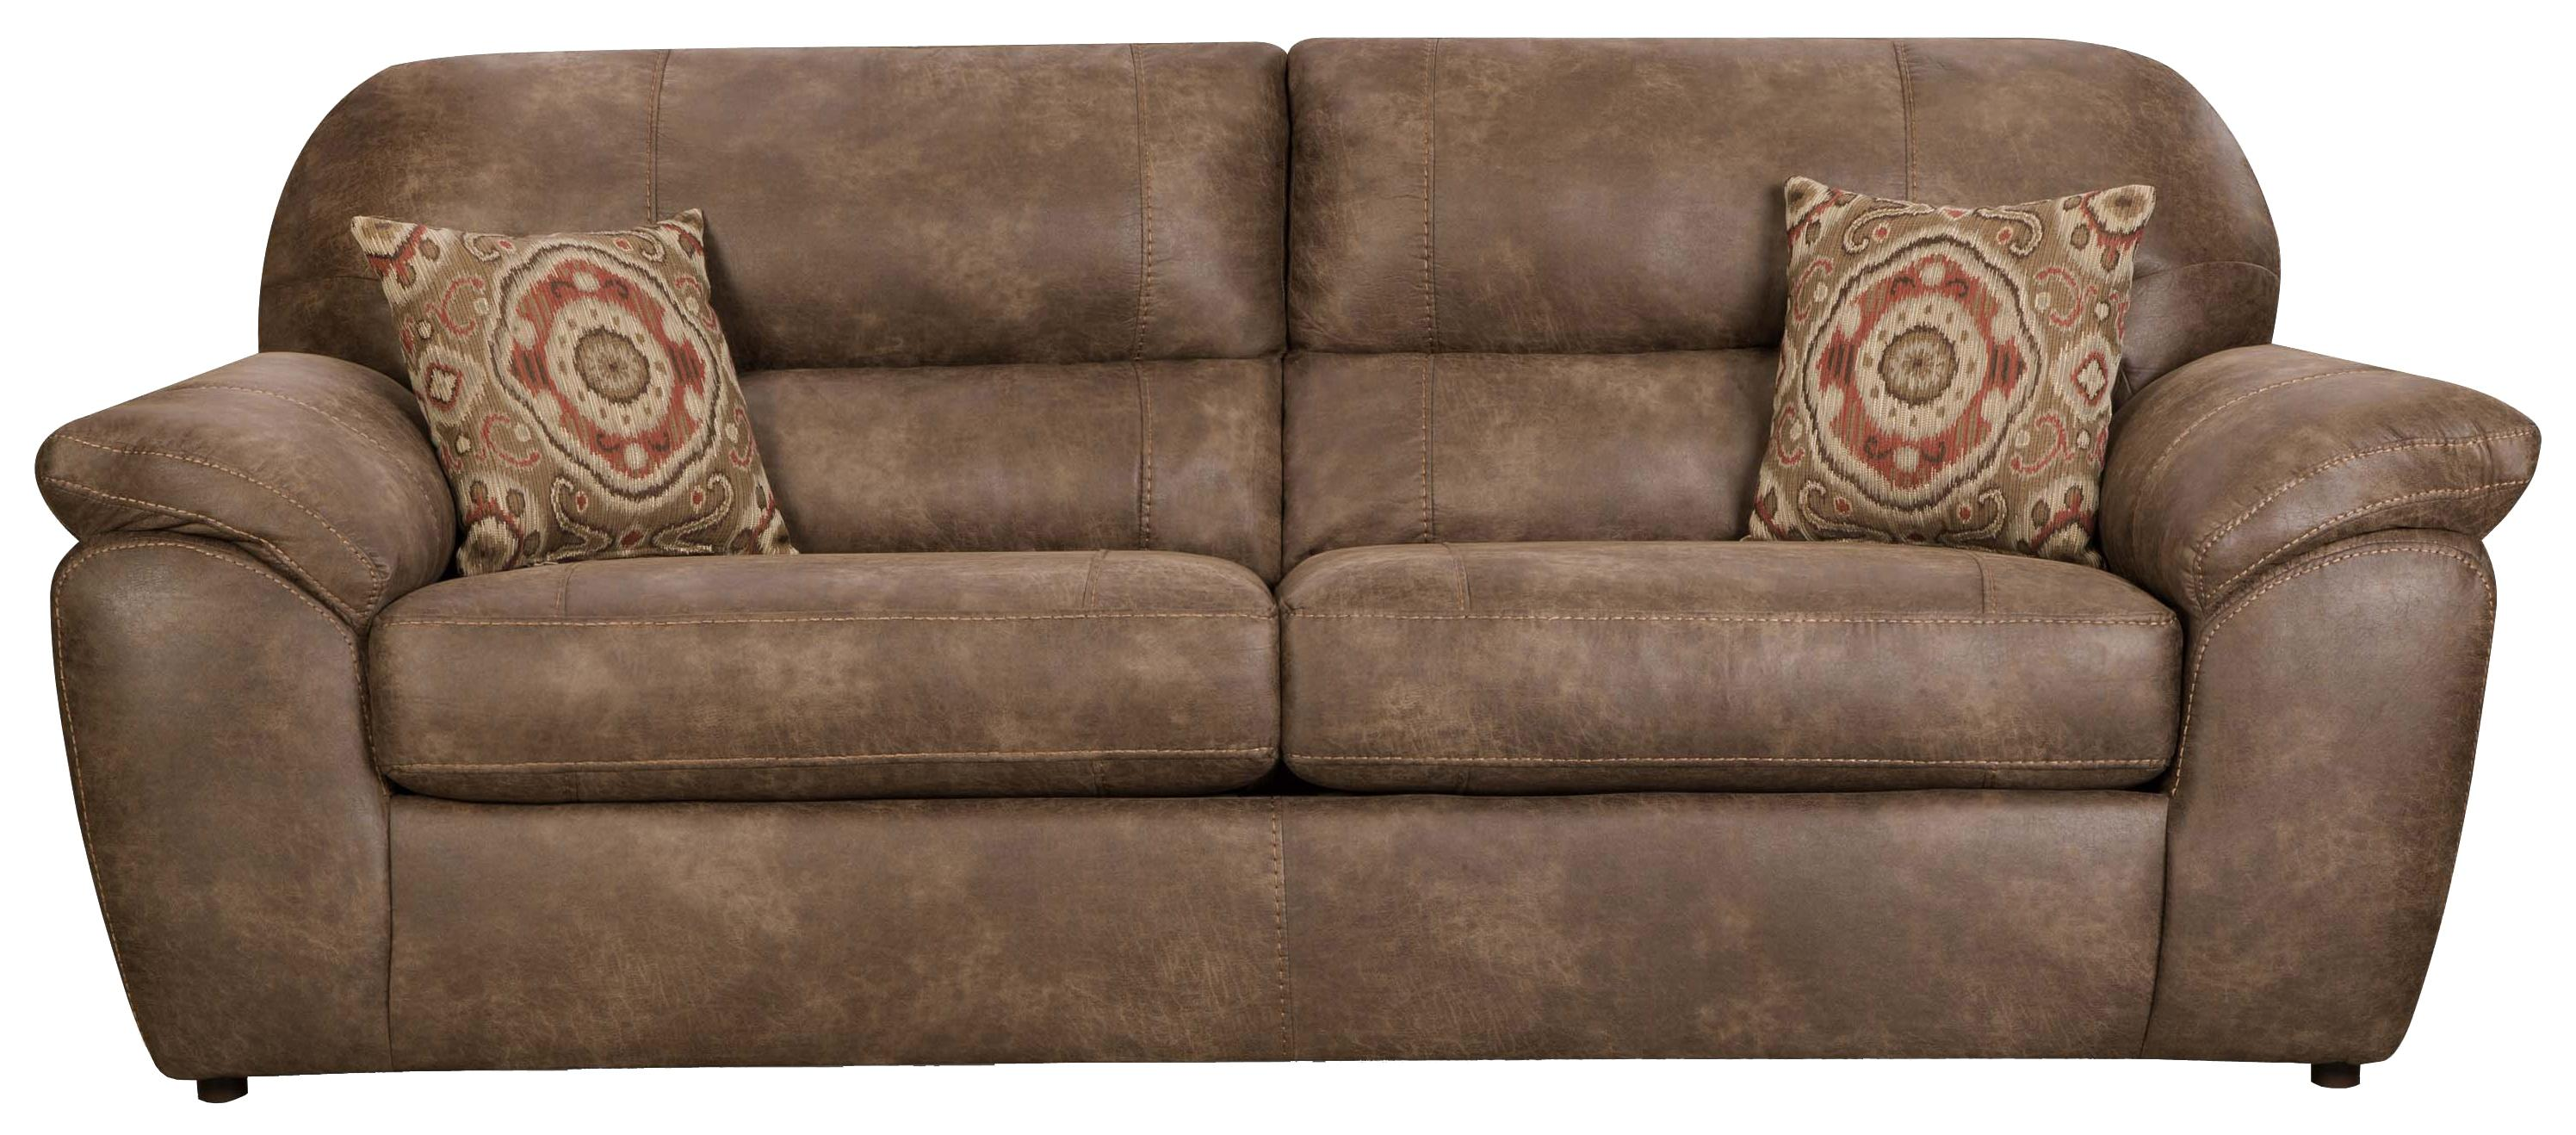 Exceptional Casual Faux Leather Plush Sofa